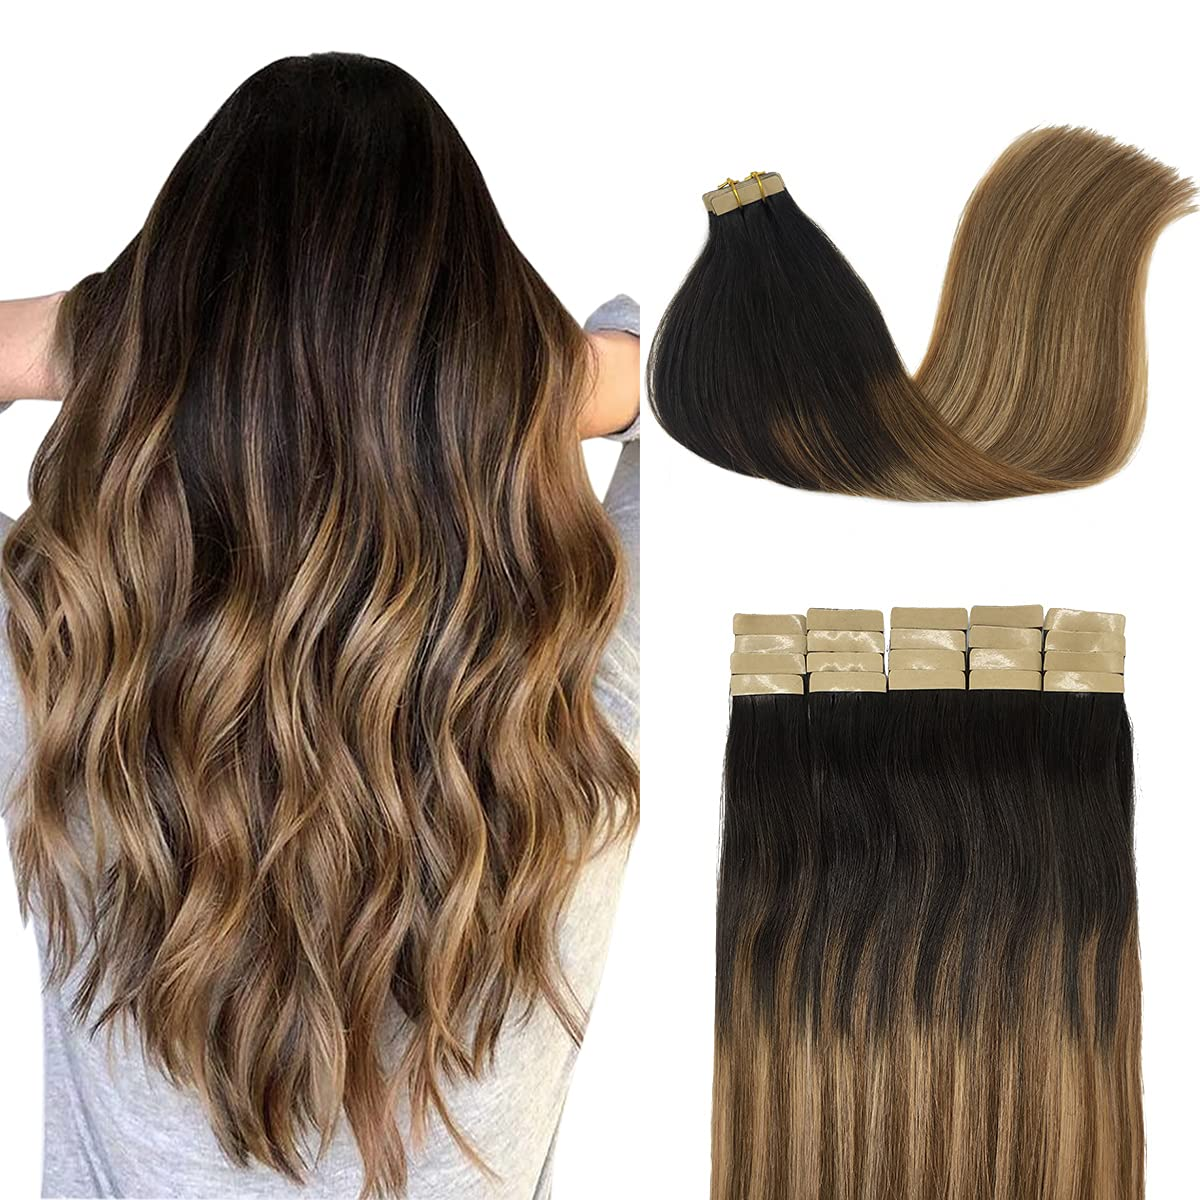 Manufacturer OFFicial shop DOORES Tape in Human Hair Extensions Balayage Ches to Brown Over item handling Dark